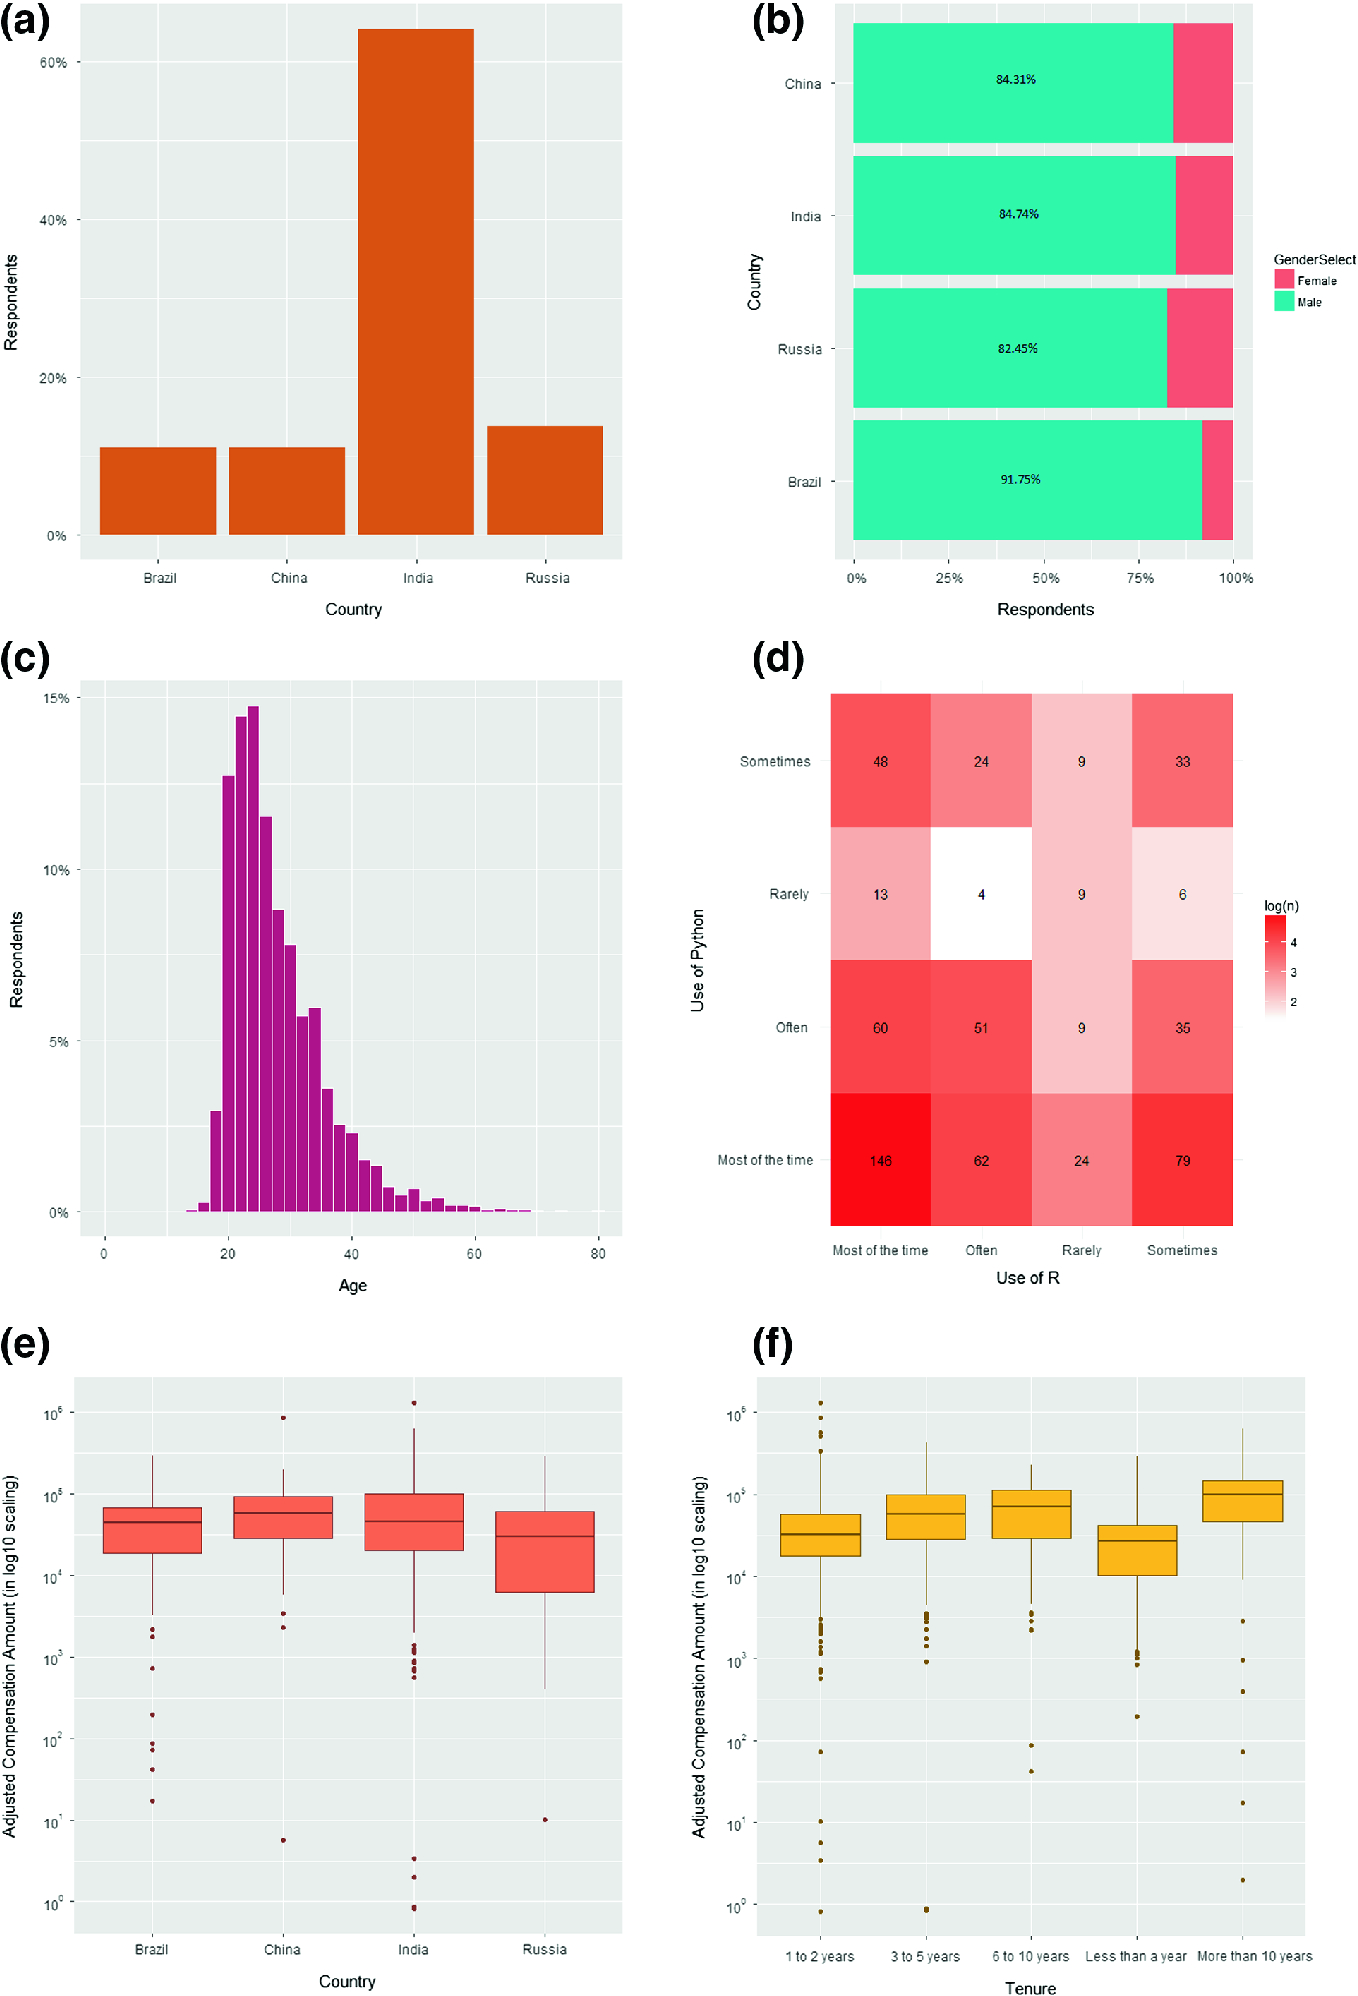 Modeling Compensation of Data Science Professionals in BRIC